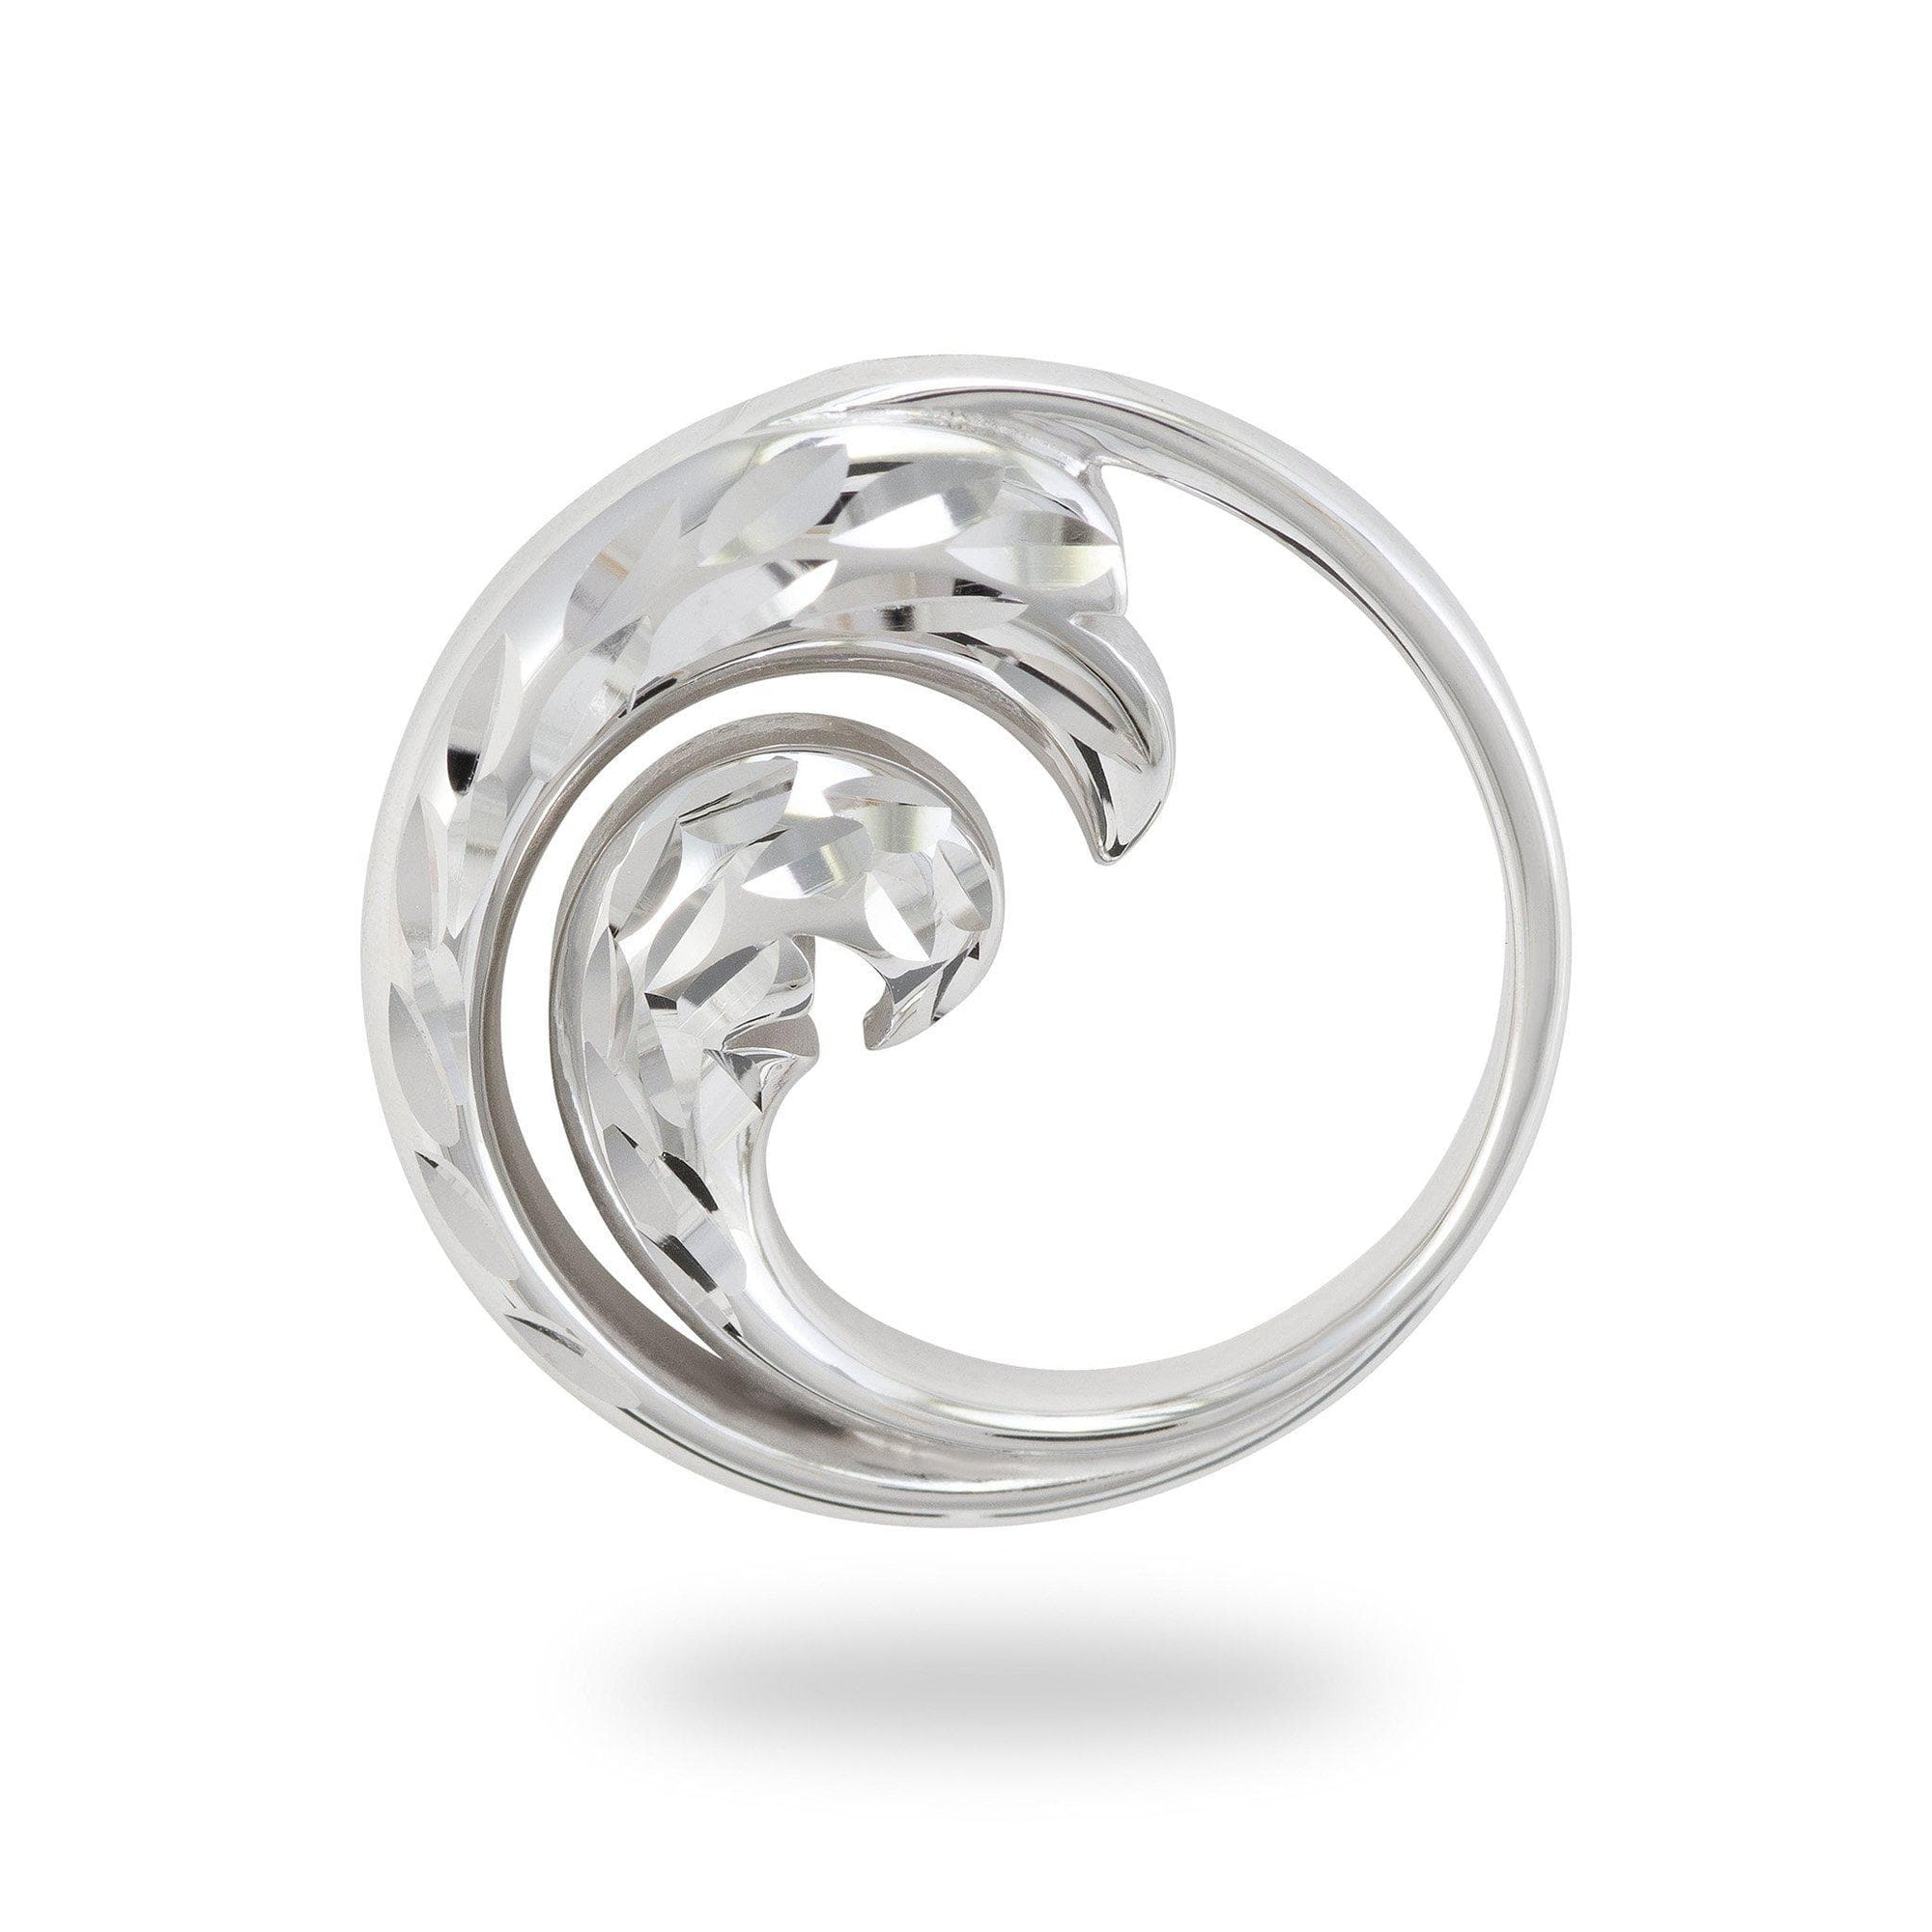 Nalu (Wave) Pendant in 14K White Gold-011-01654